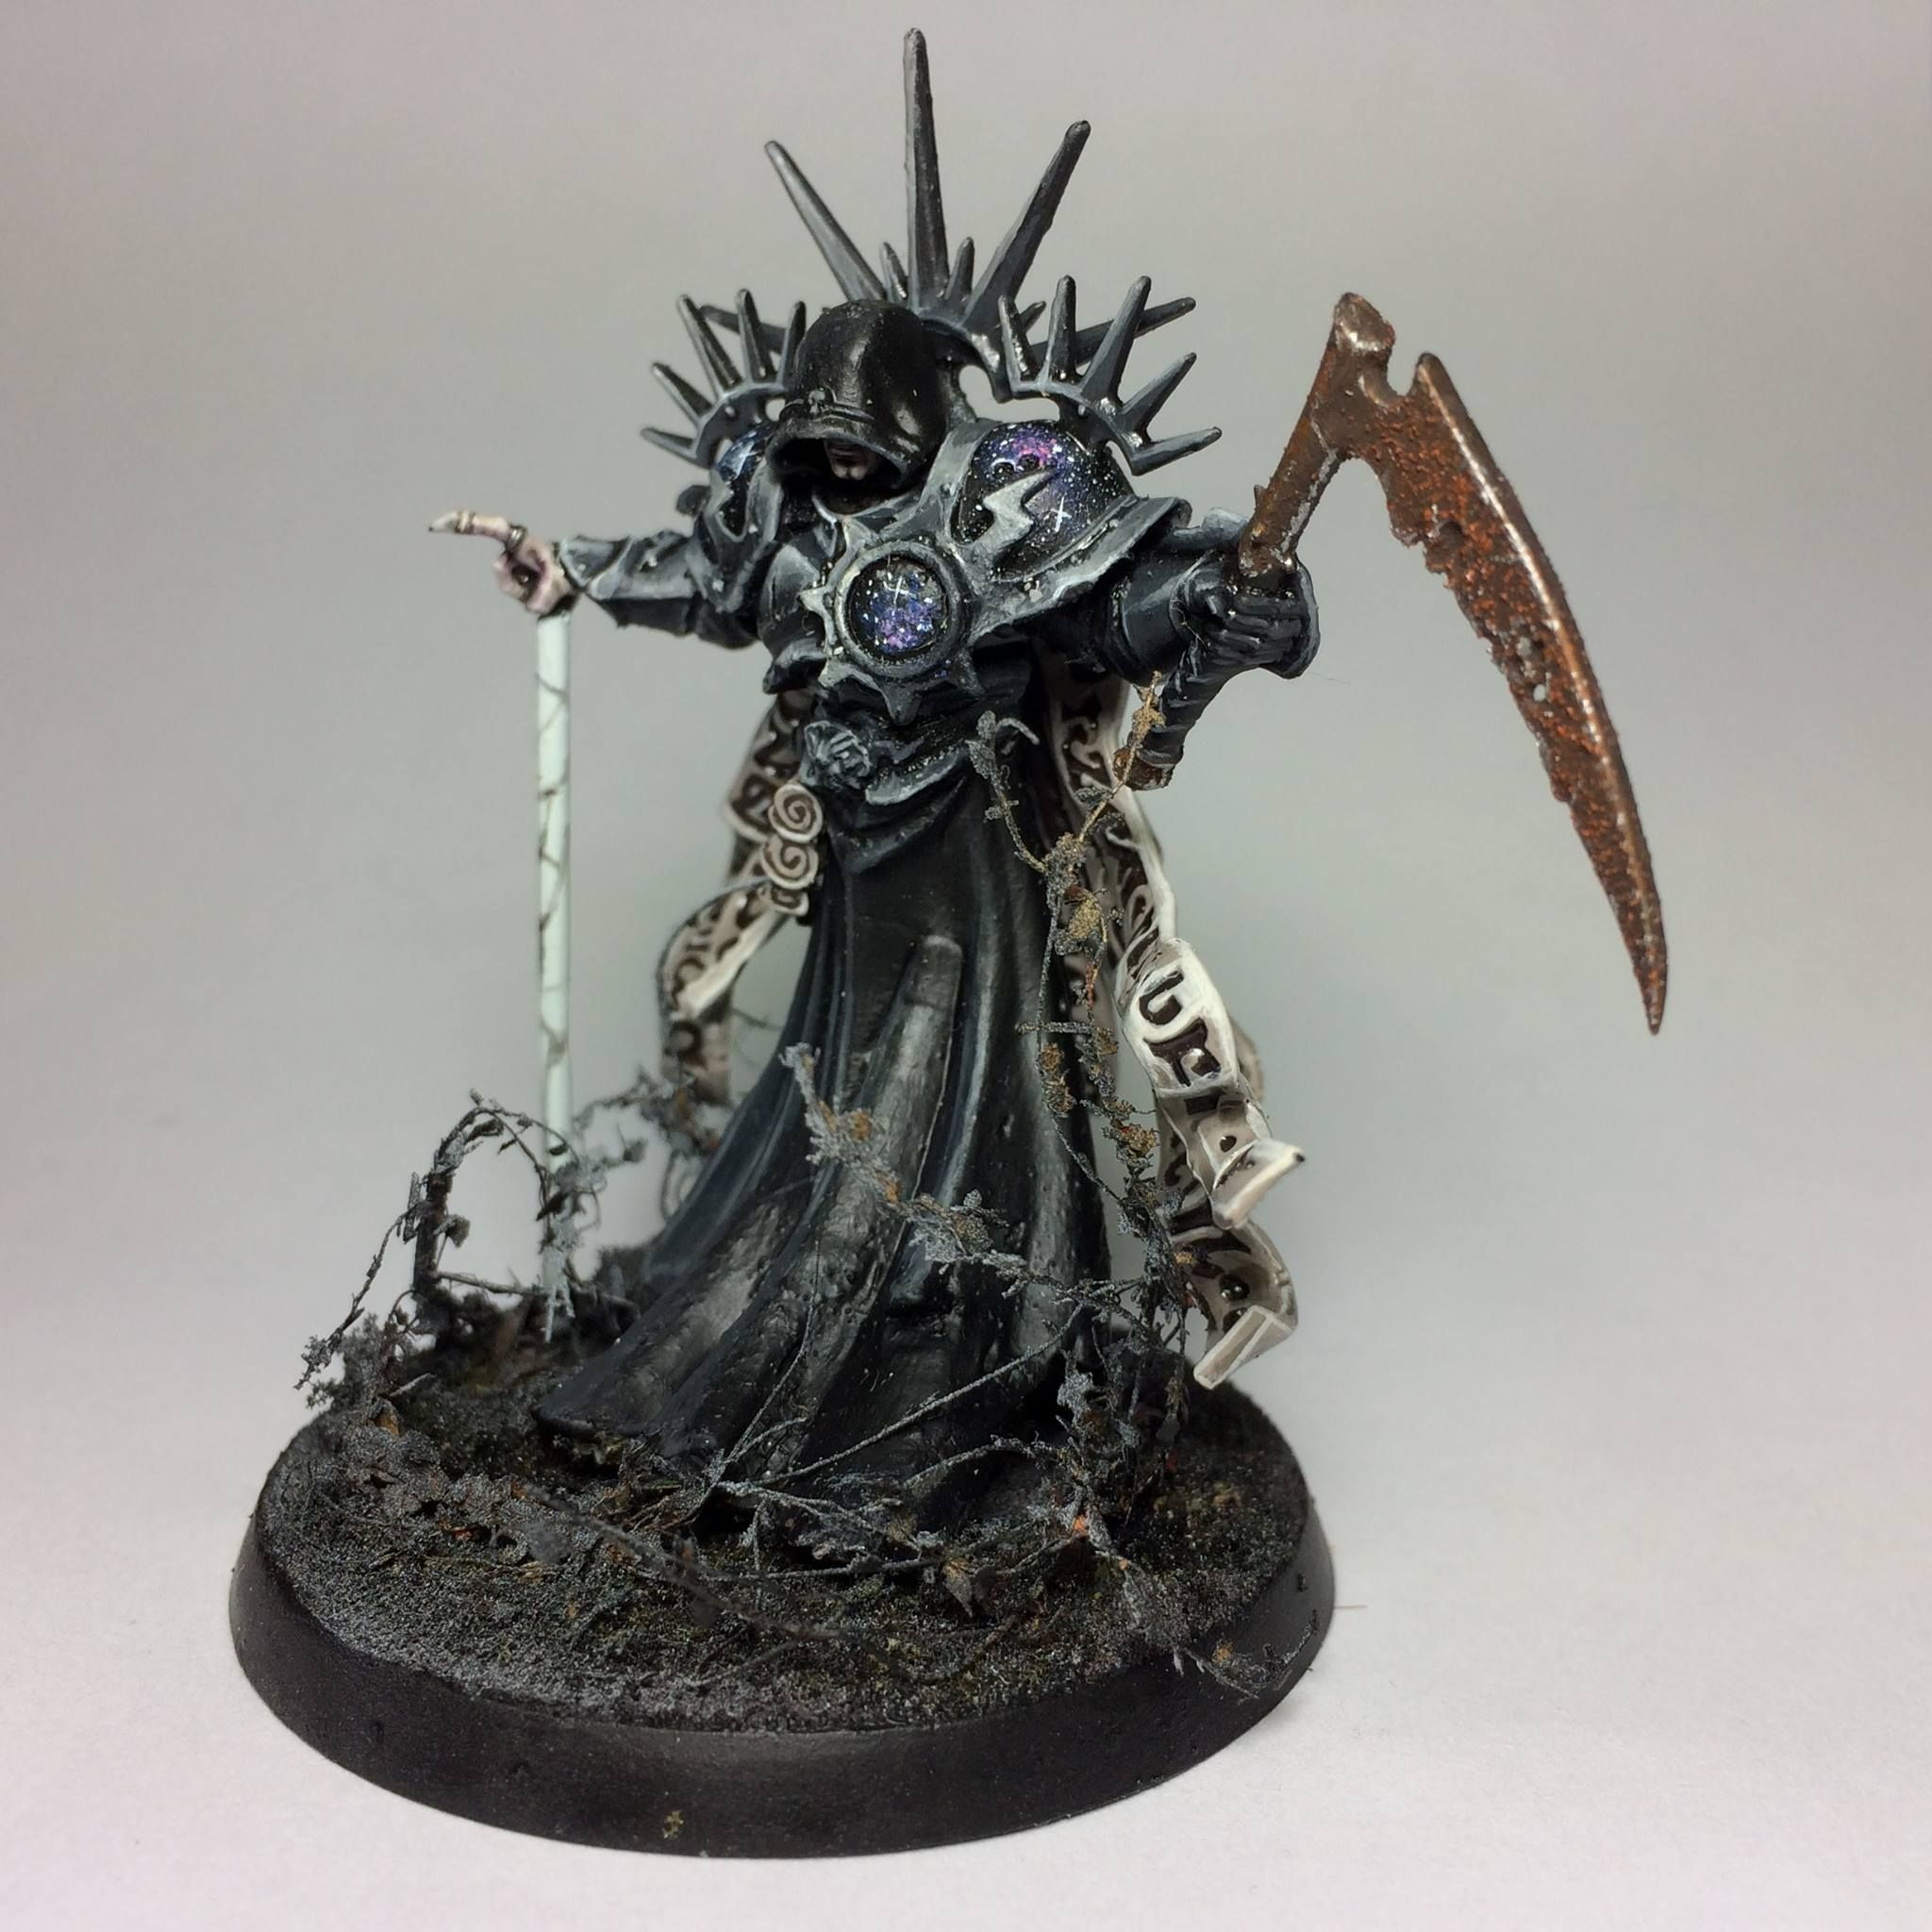 Sorcerer painted action figure 28mm Chaos Space Marines Warhammer 40K